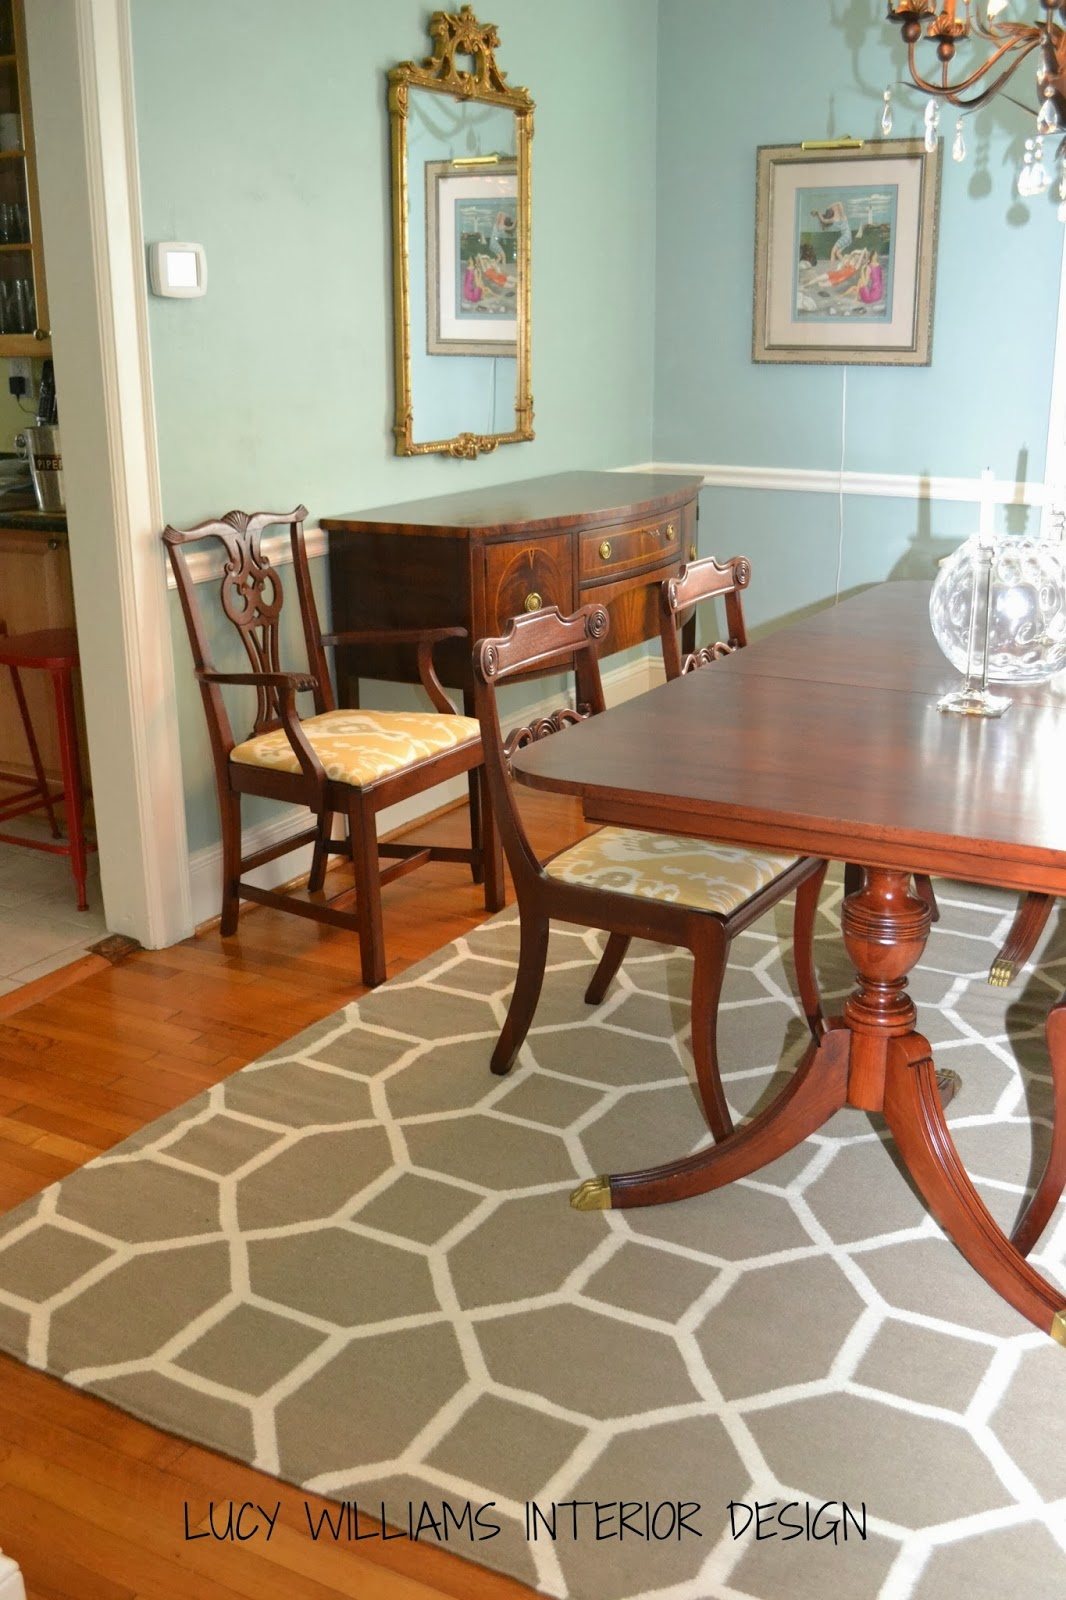 Dining Room Rug Design LUCY WILLIAMS INTERIOR DESIGN BLOG BEFORE AND AFTER DINING ROOM RUG